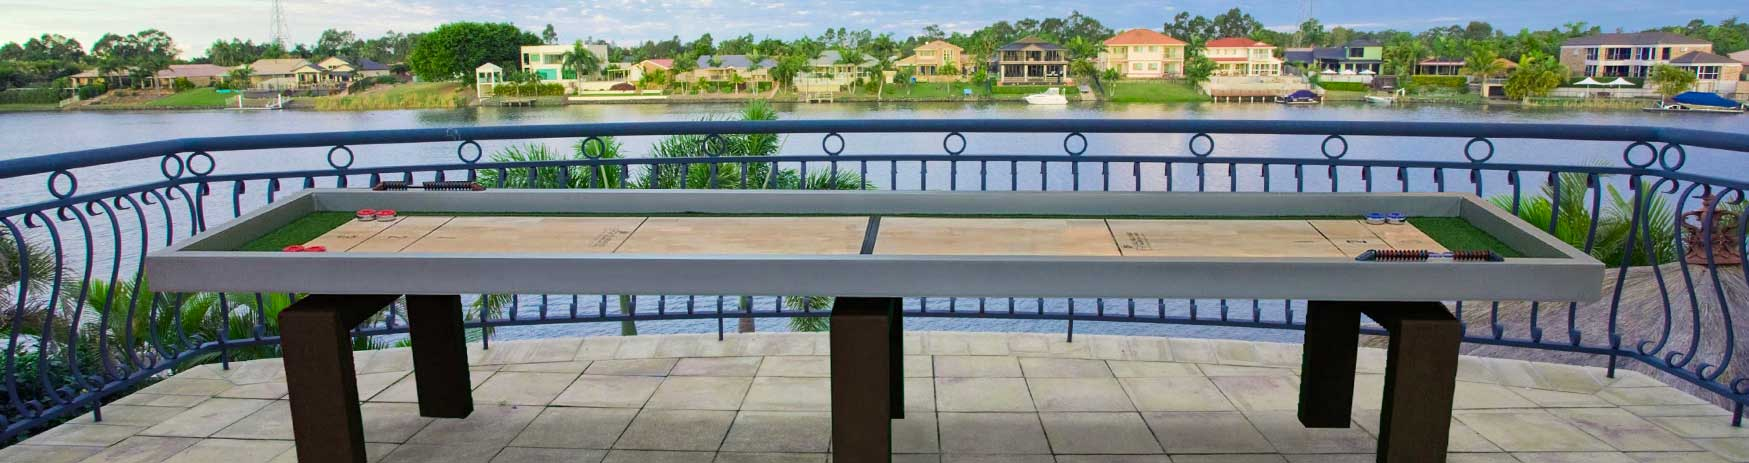 Outdoor Shuffleboard game table on patio overlooking the water